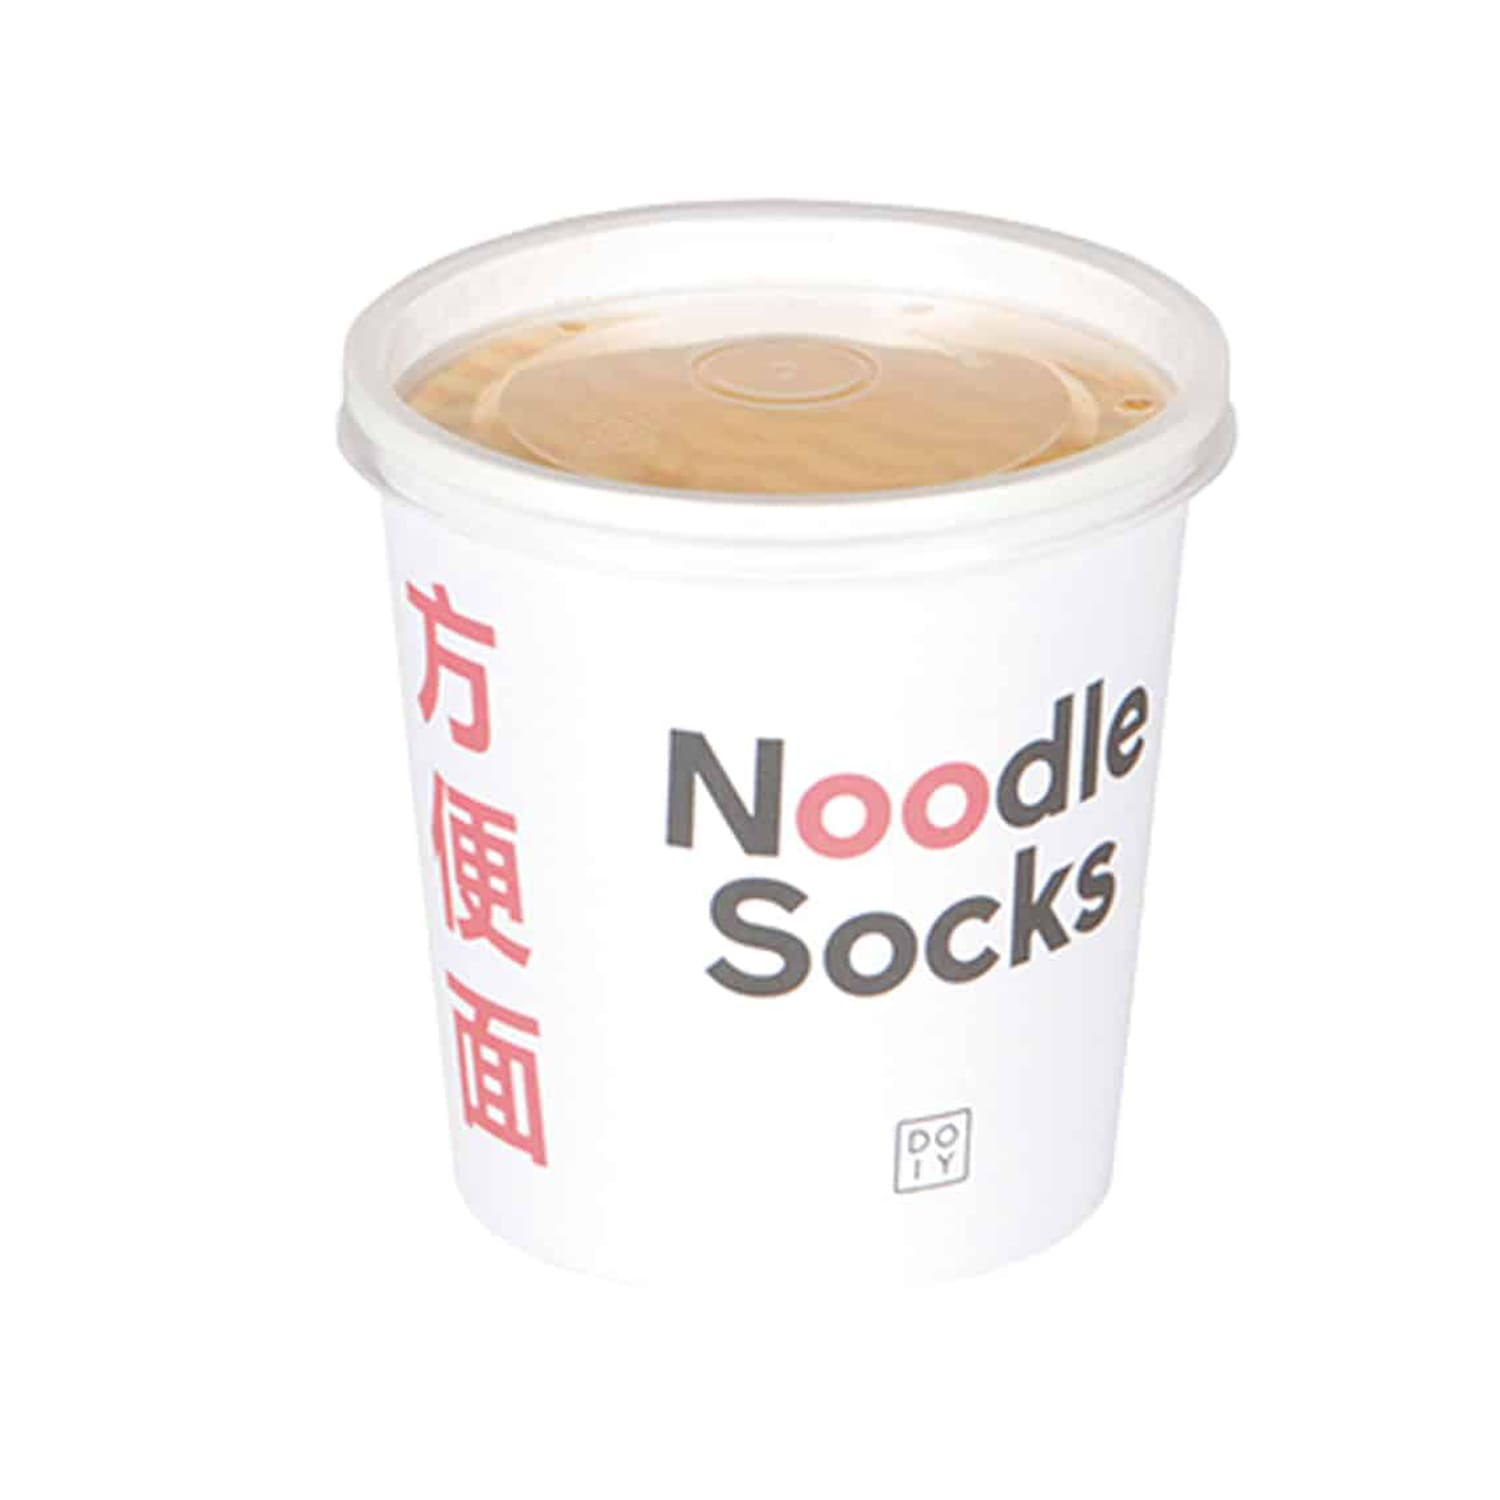 Noodle Socks Accessories - Doiy - Food Accessory - Noodle -